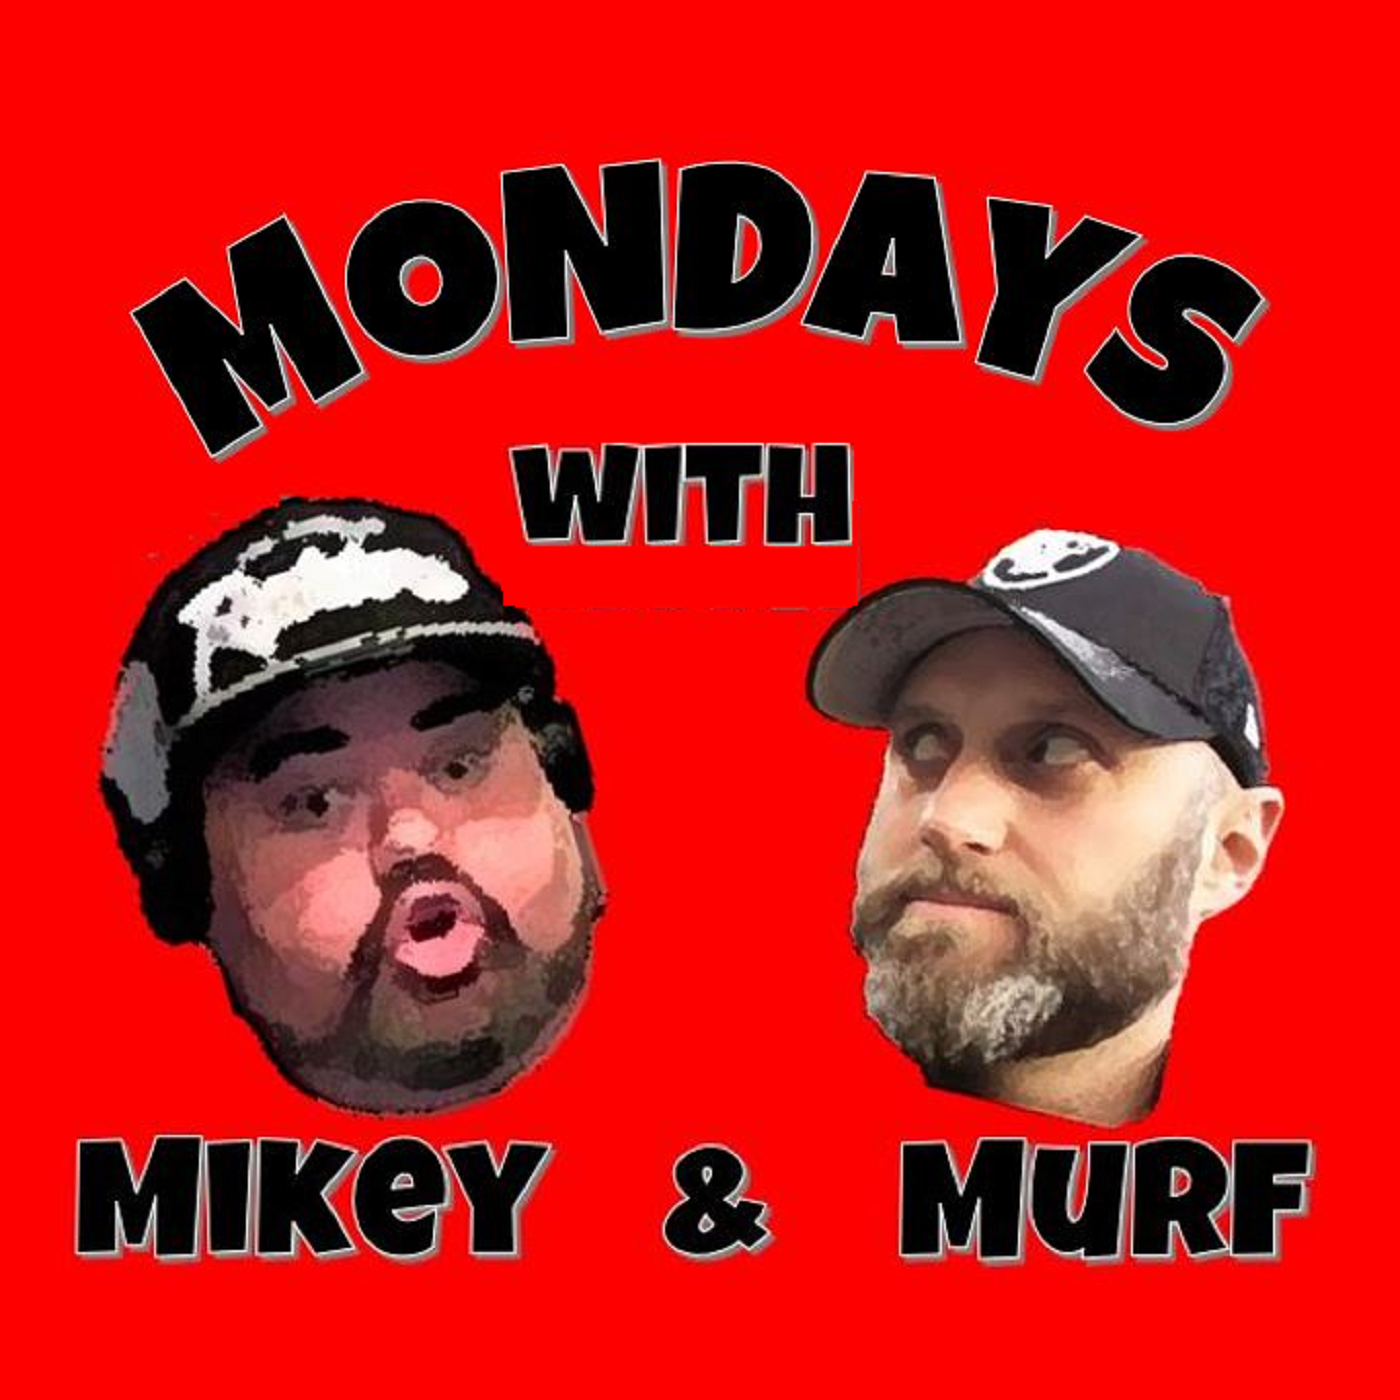 Artwork for Mondays with Mikey & Murf Episode #1